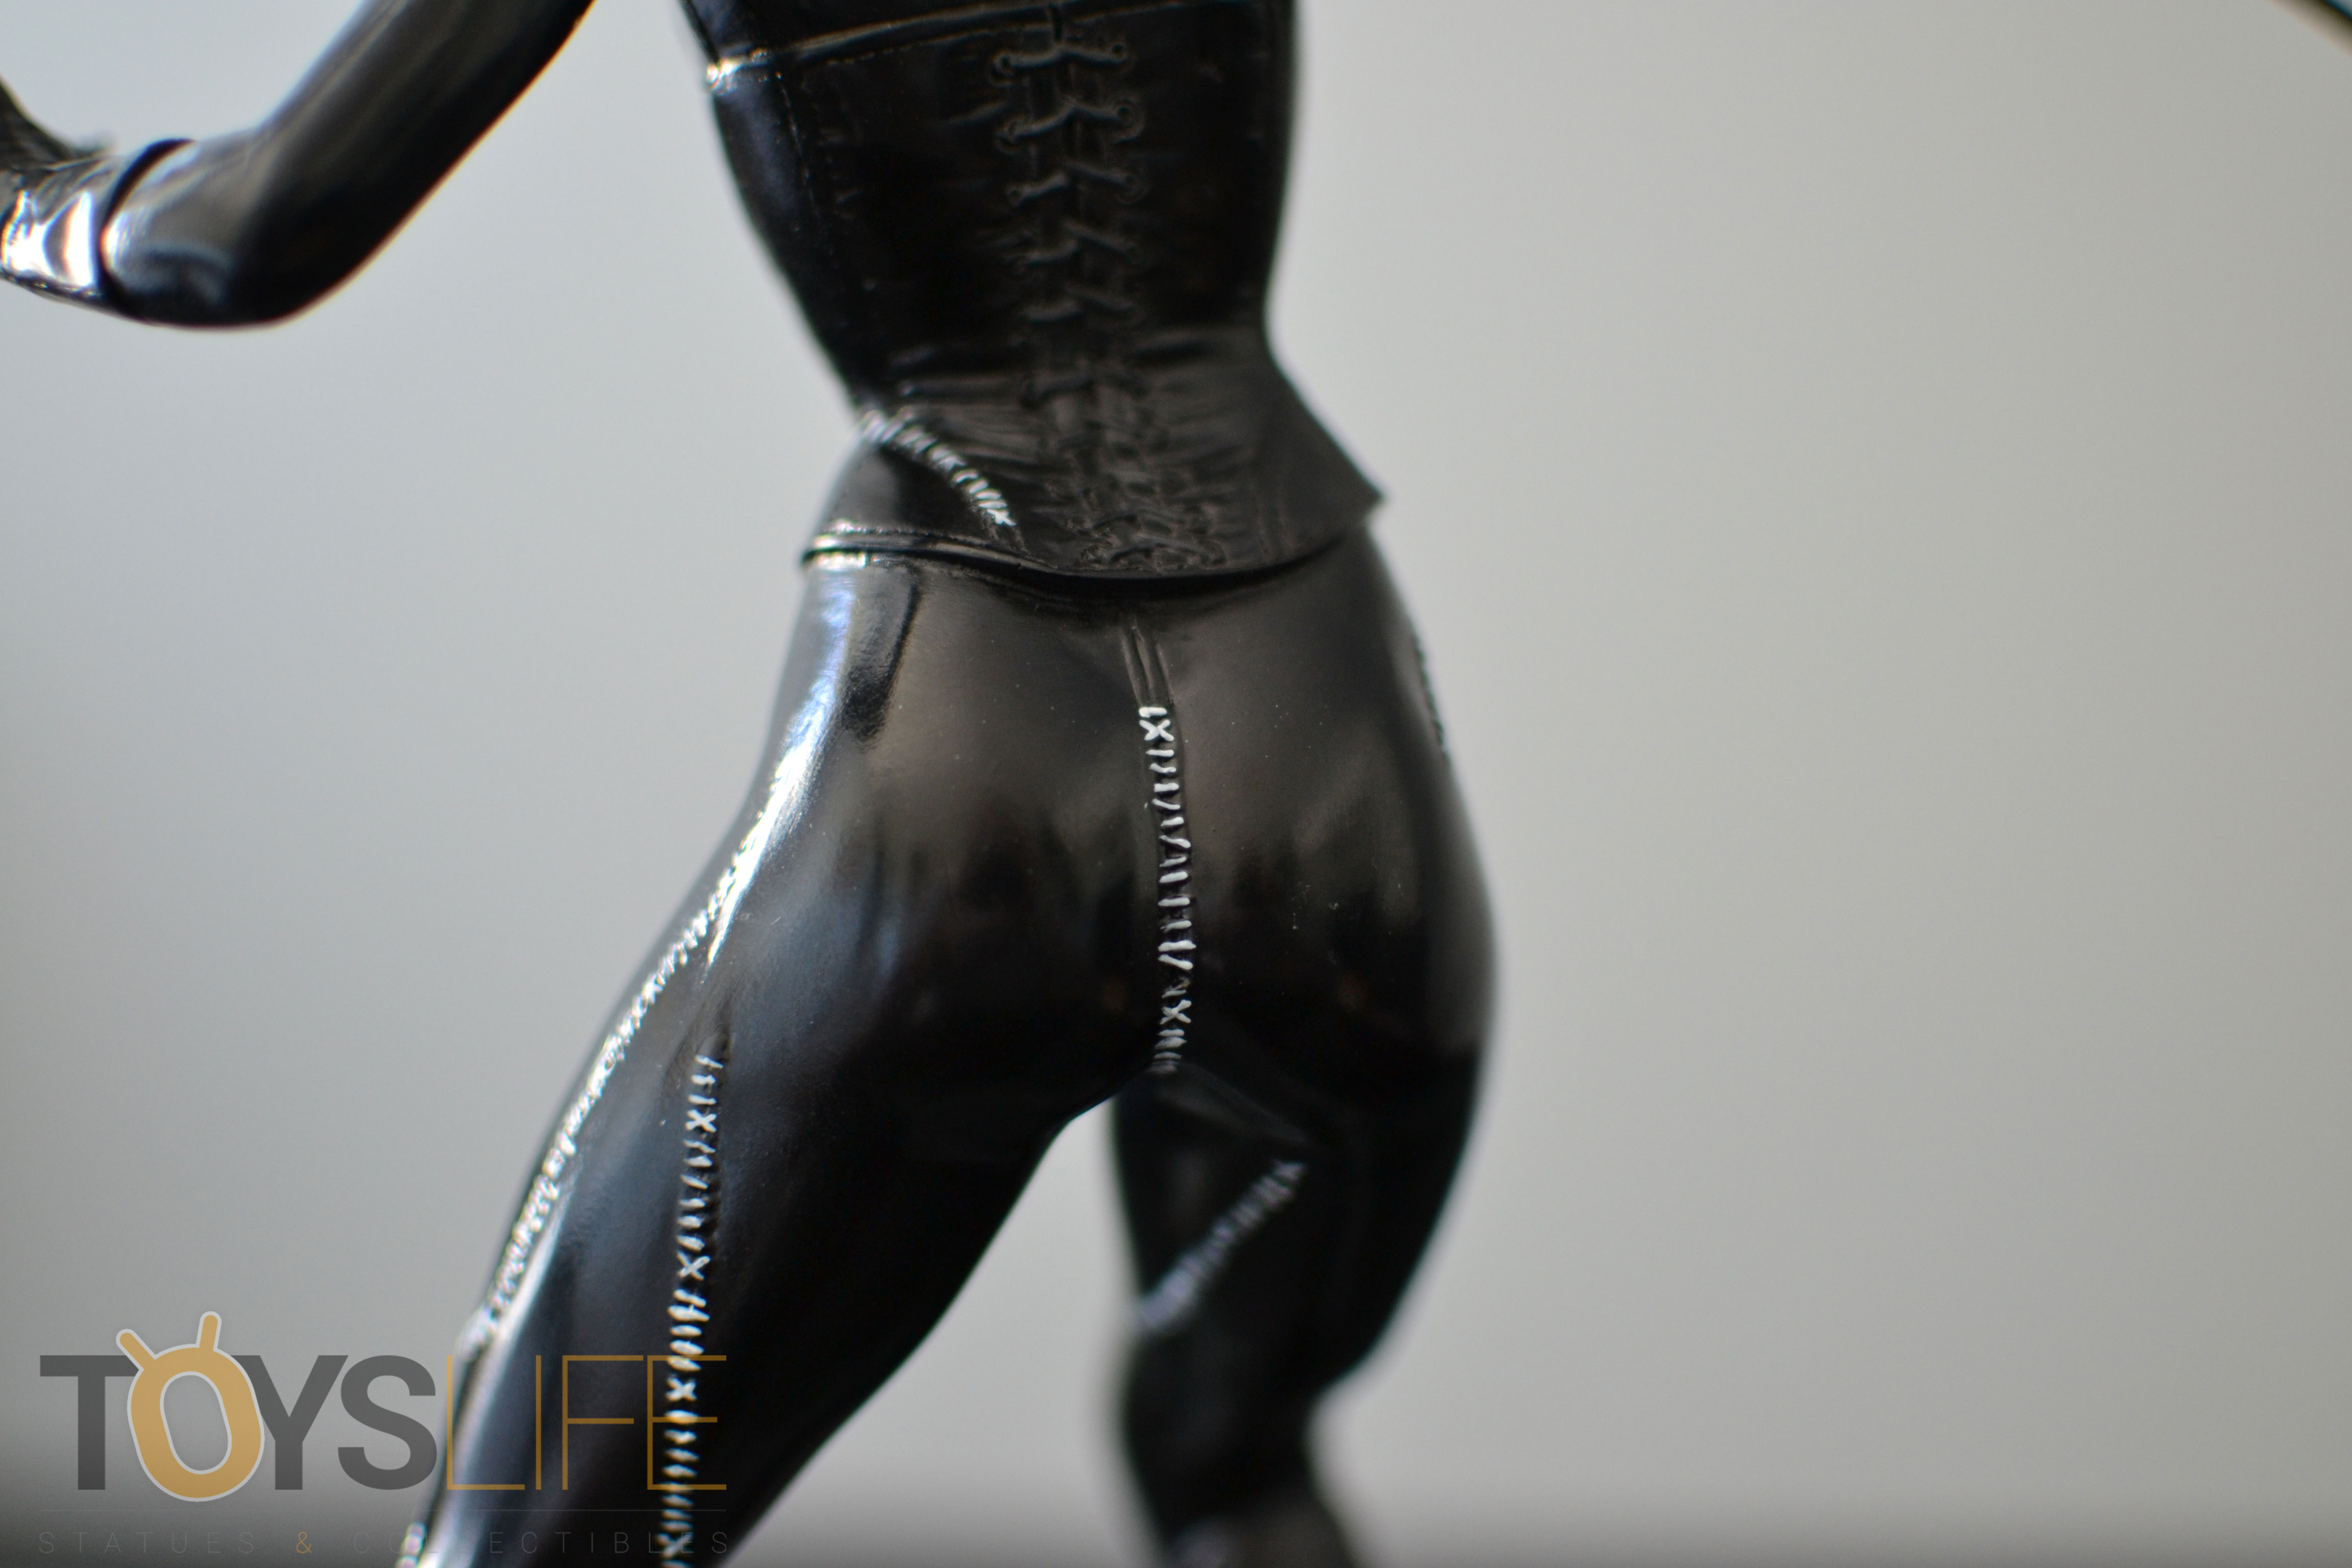 tweeterhead-catwoman-michelle-pfeiffer-maquette-toyslife-review-22